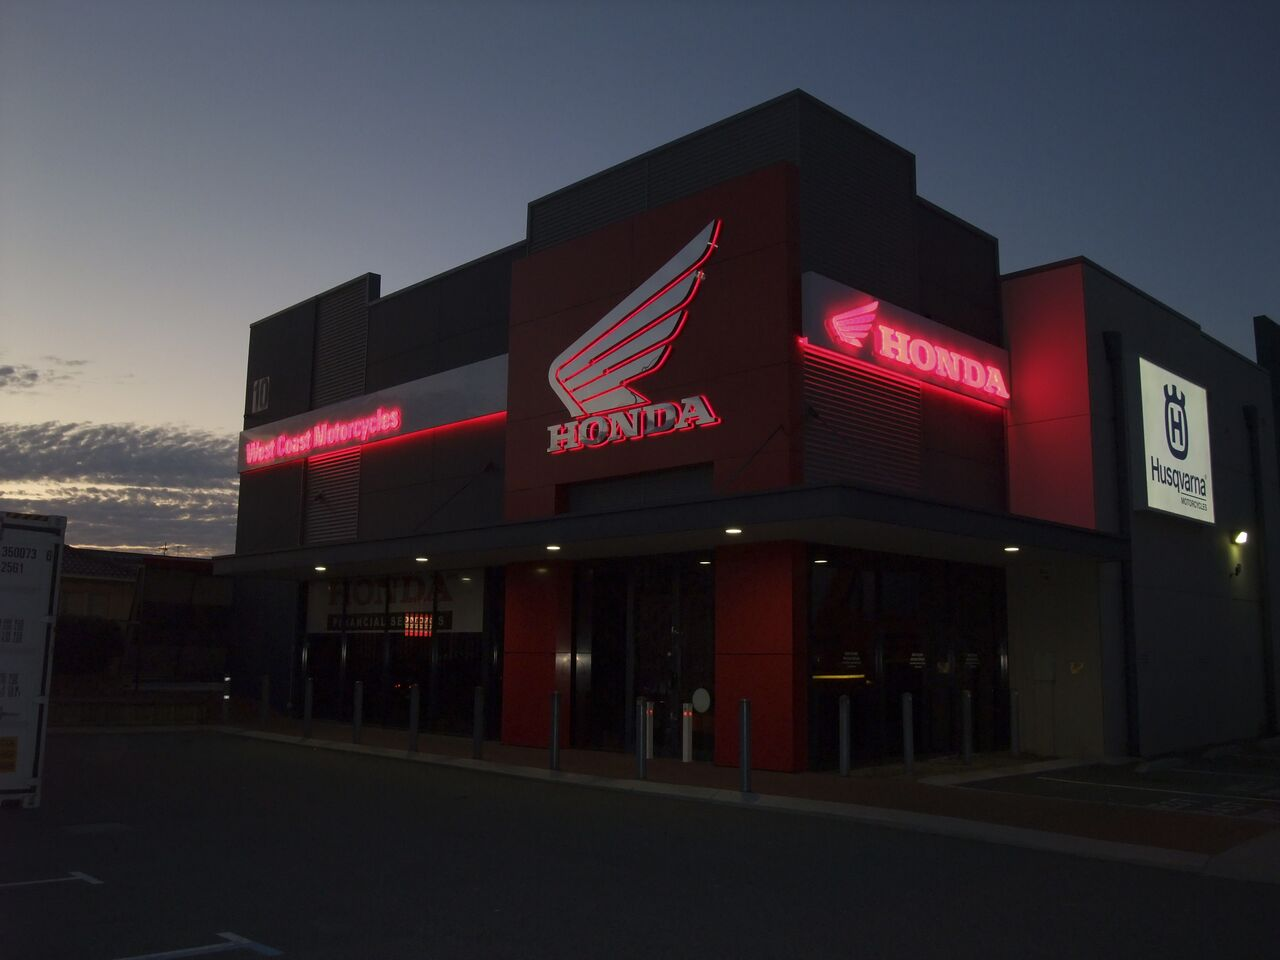 westcoast Honda Perth Honda illuminated Signs